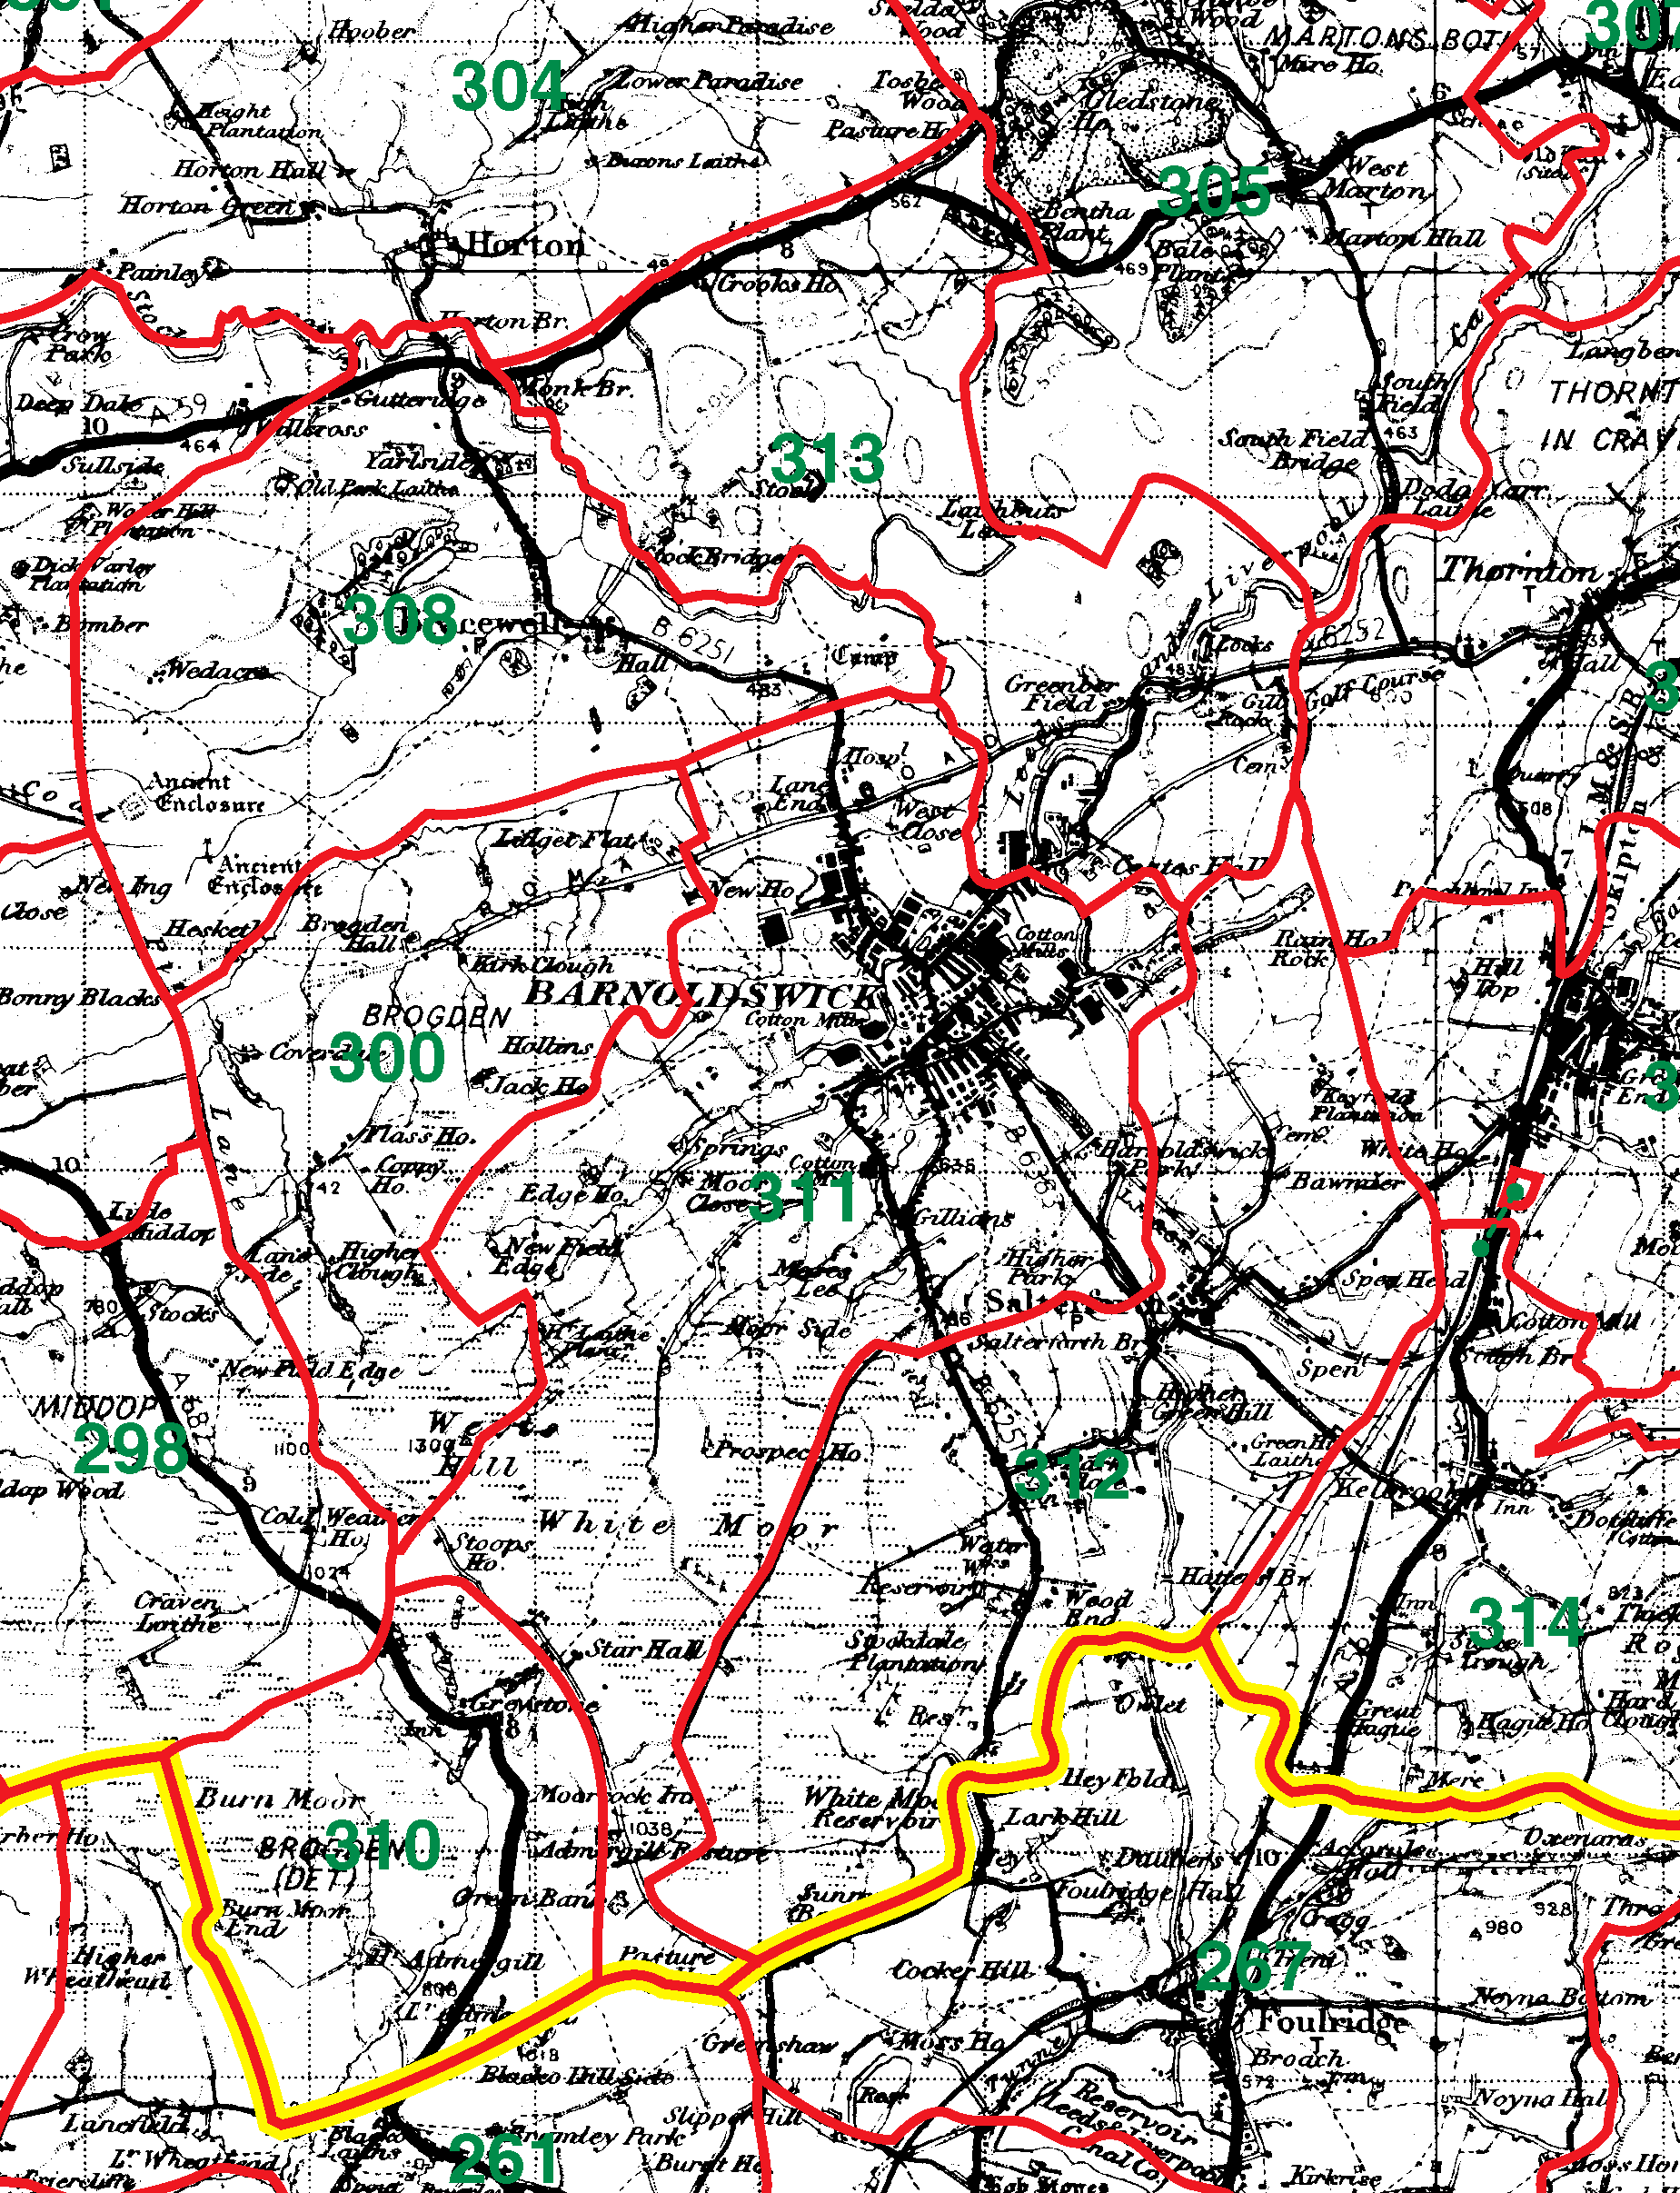 Barnoldswick boundaries map